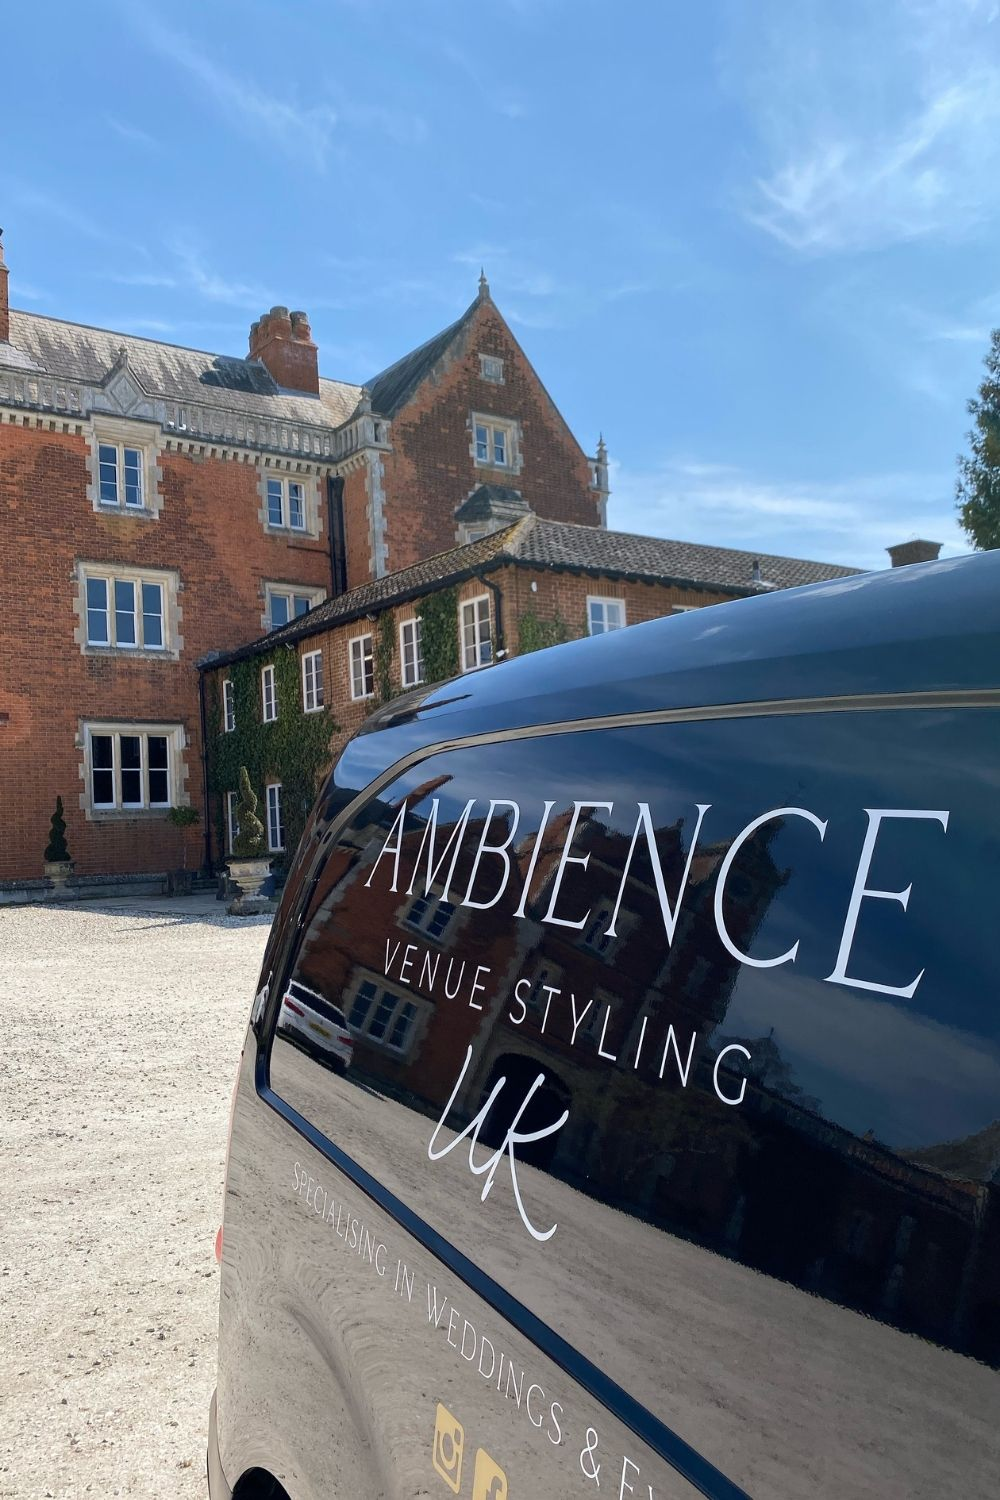 Ambience Venue Styling UK